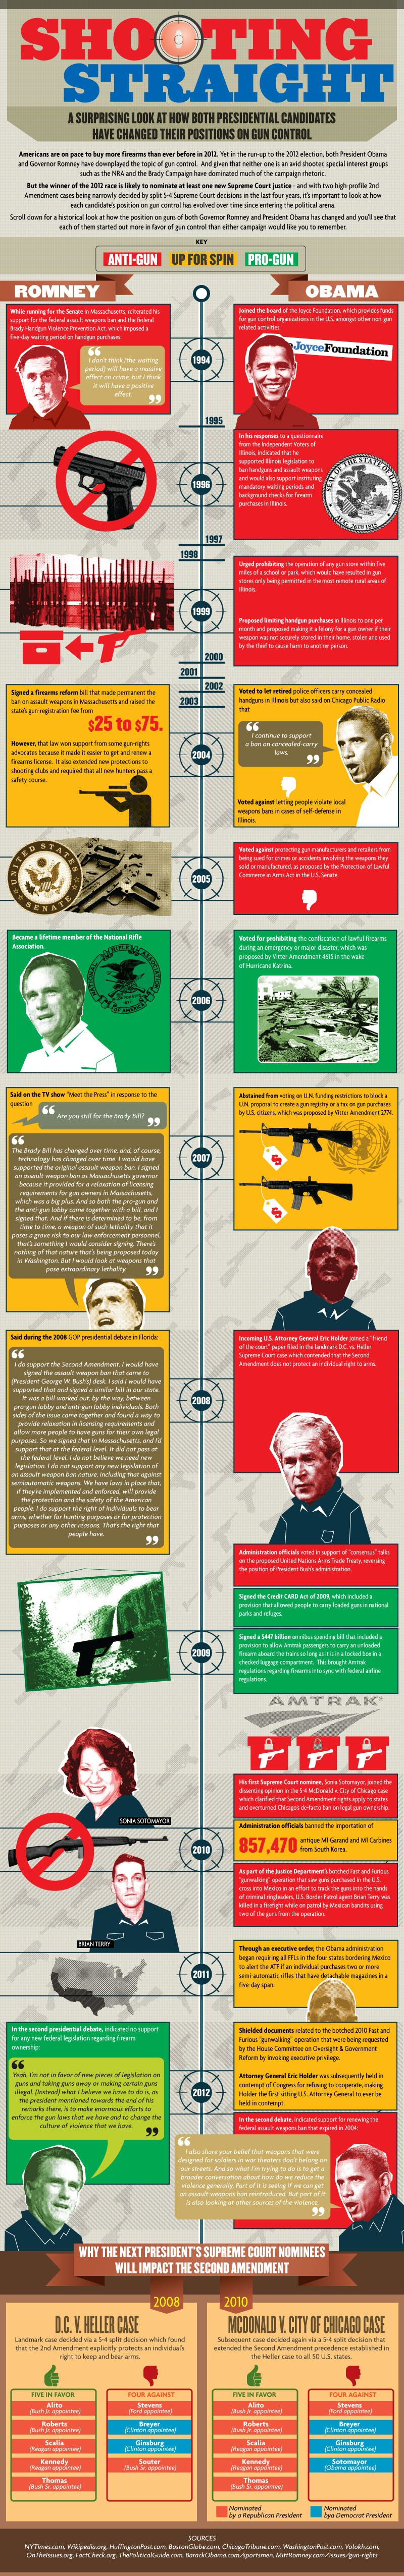 Shooting Straight: A Surprising Look At How Both Presidential Candidates Have Changed On Gun Control [INFOGRAPHIC]